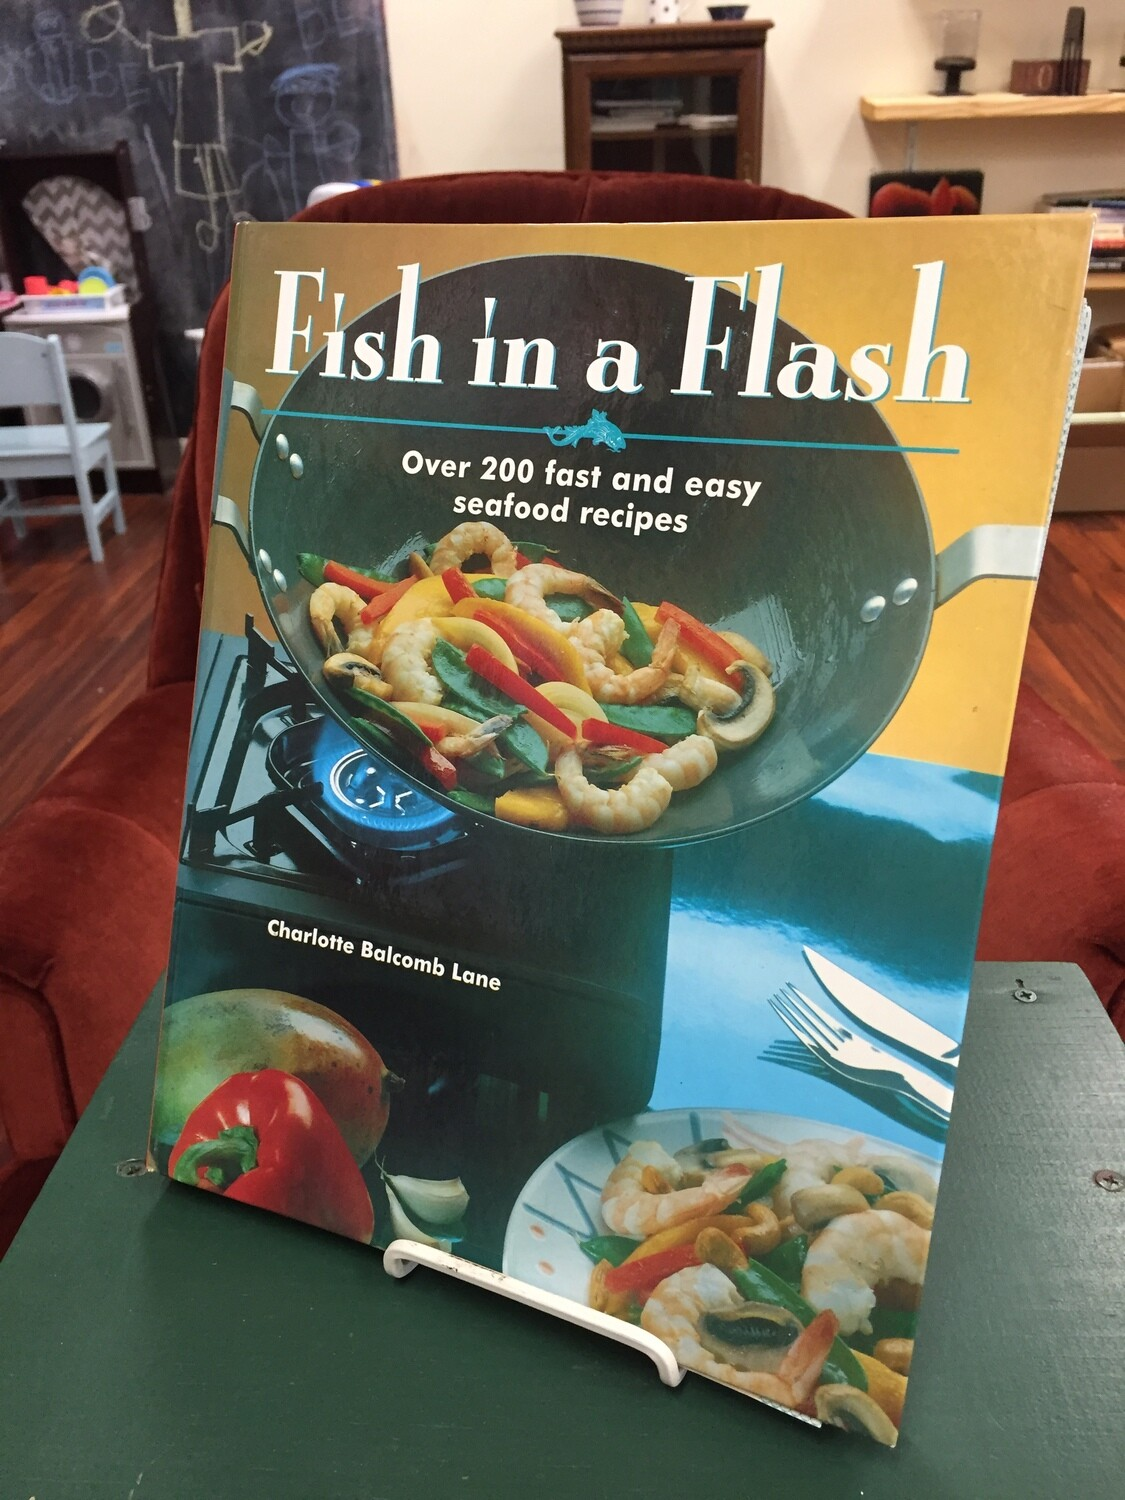 Fish in a Flash